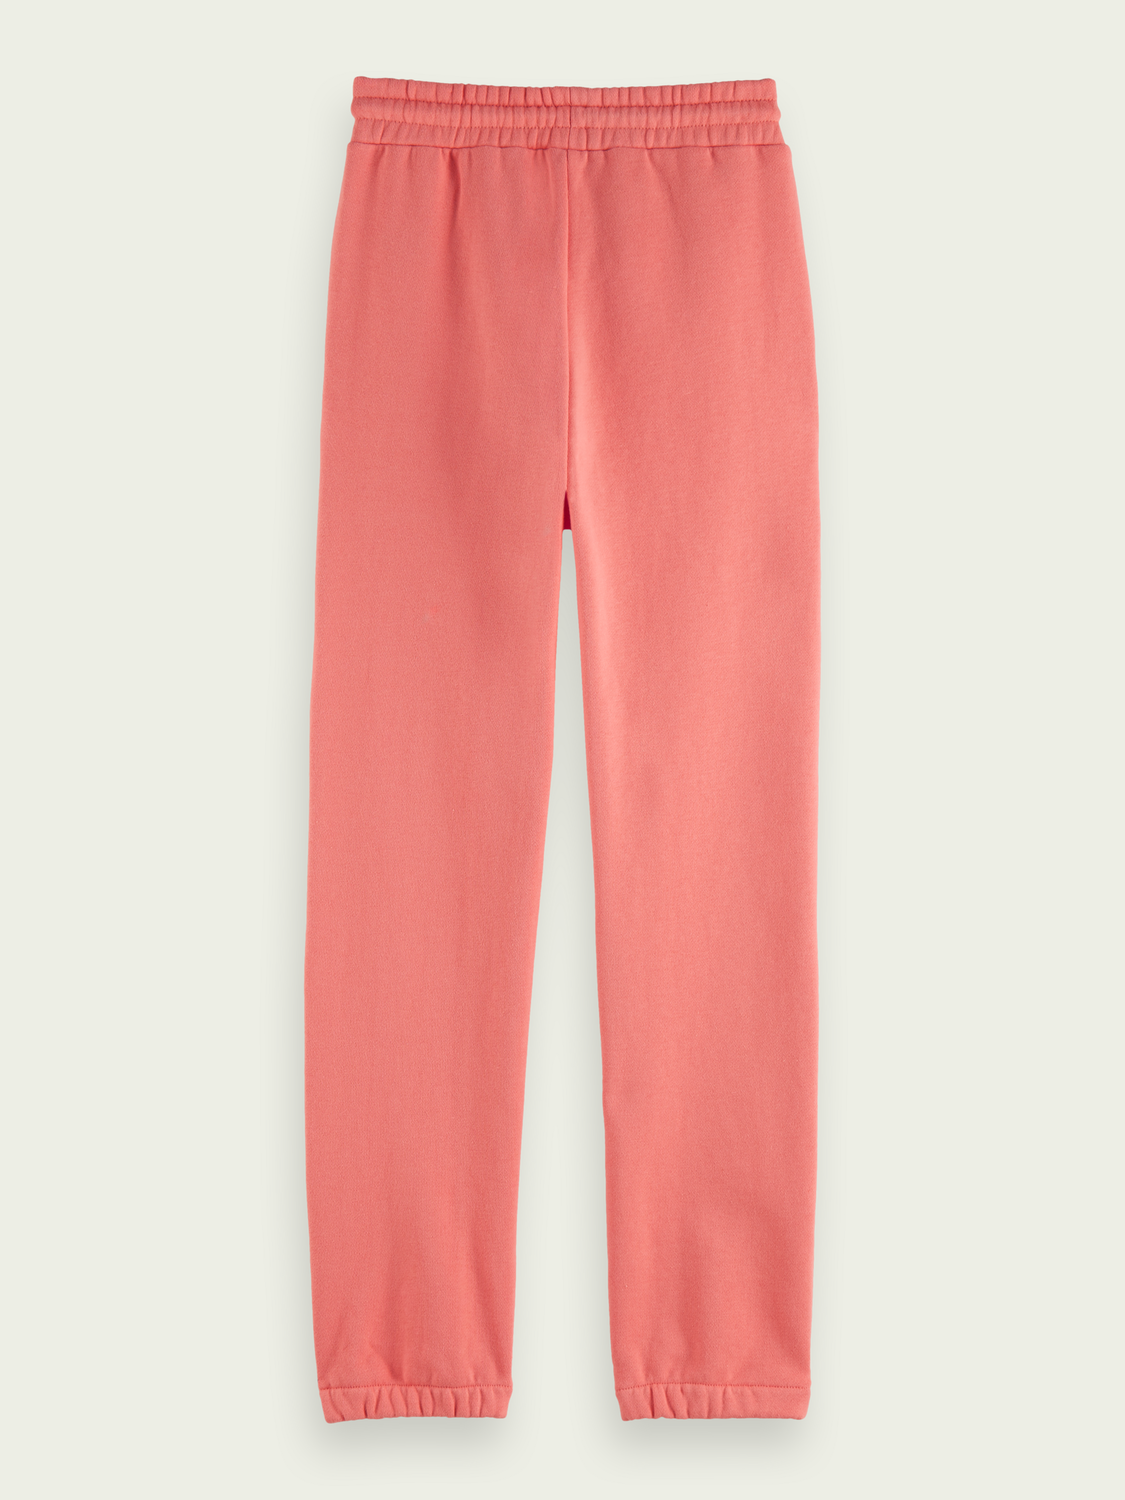 Kids Relaxed-fit cotton sweatpants